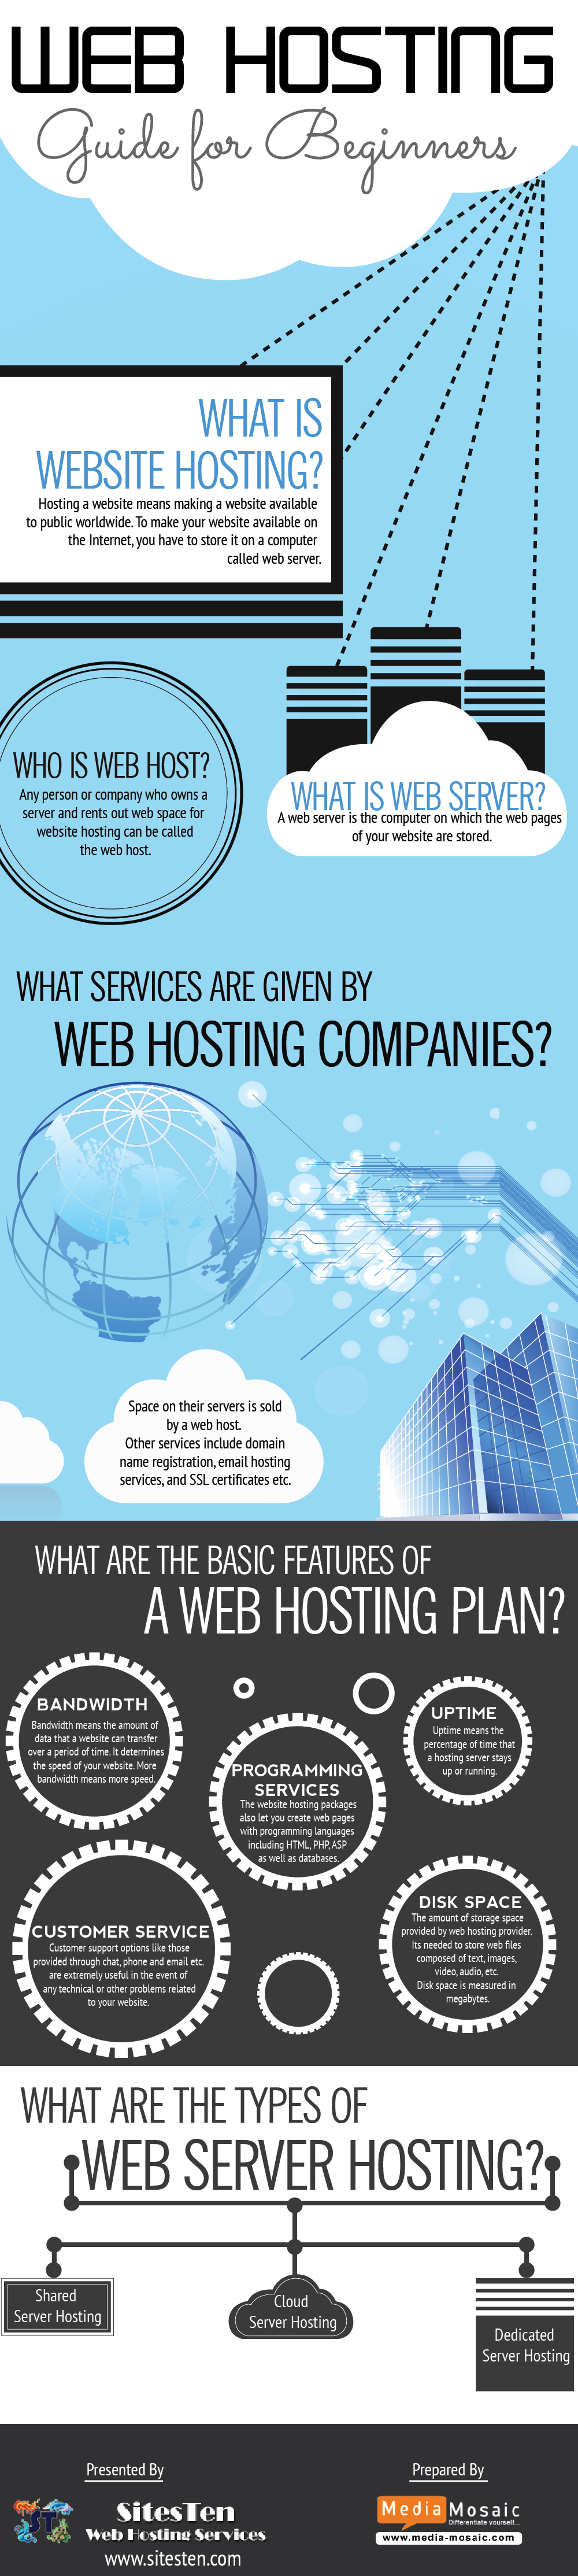 Web Hosting Guide For Beginners - Image 1